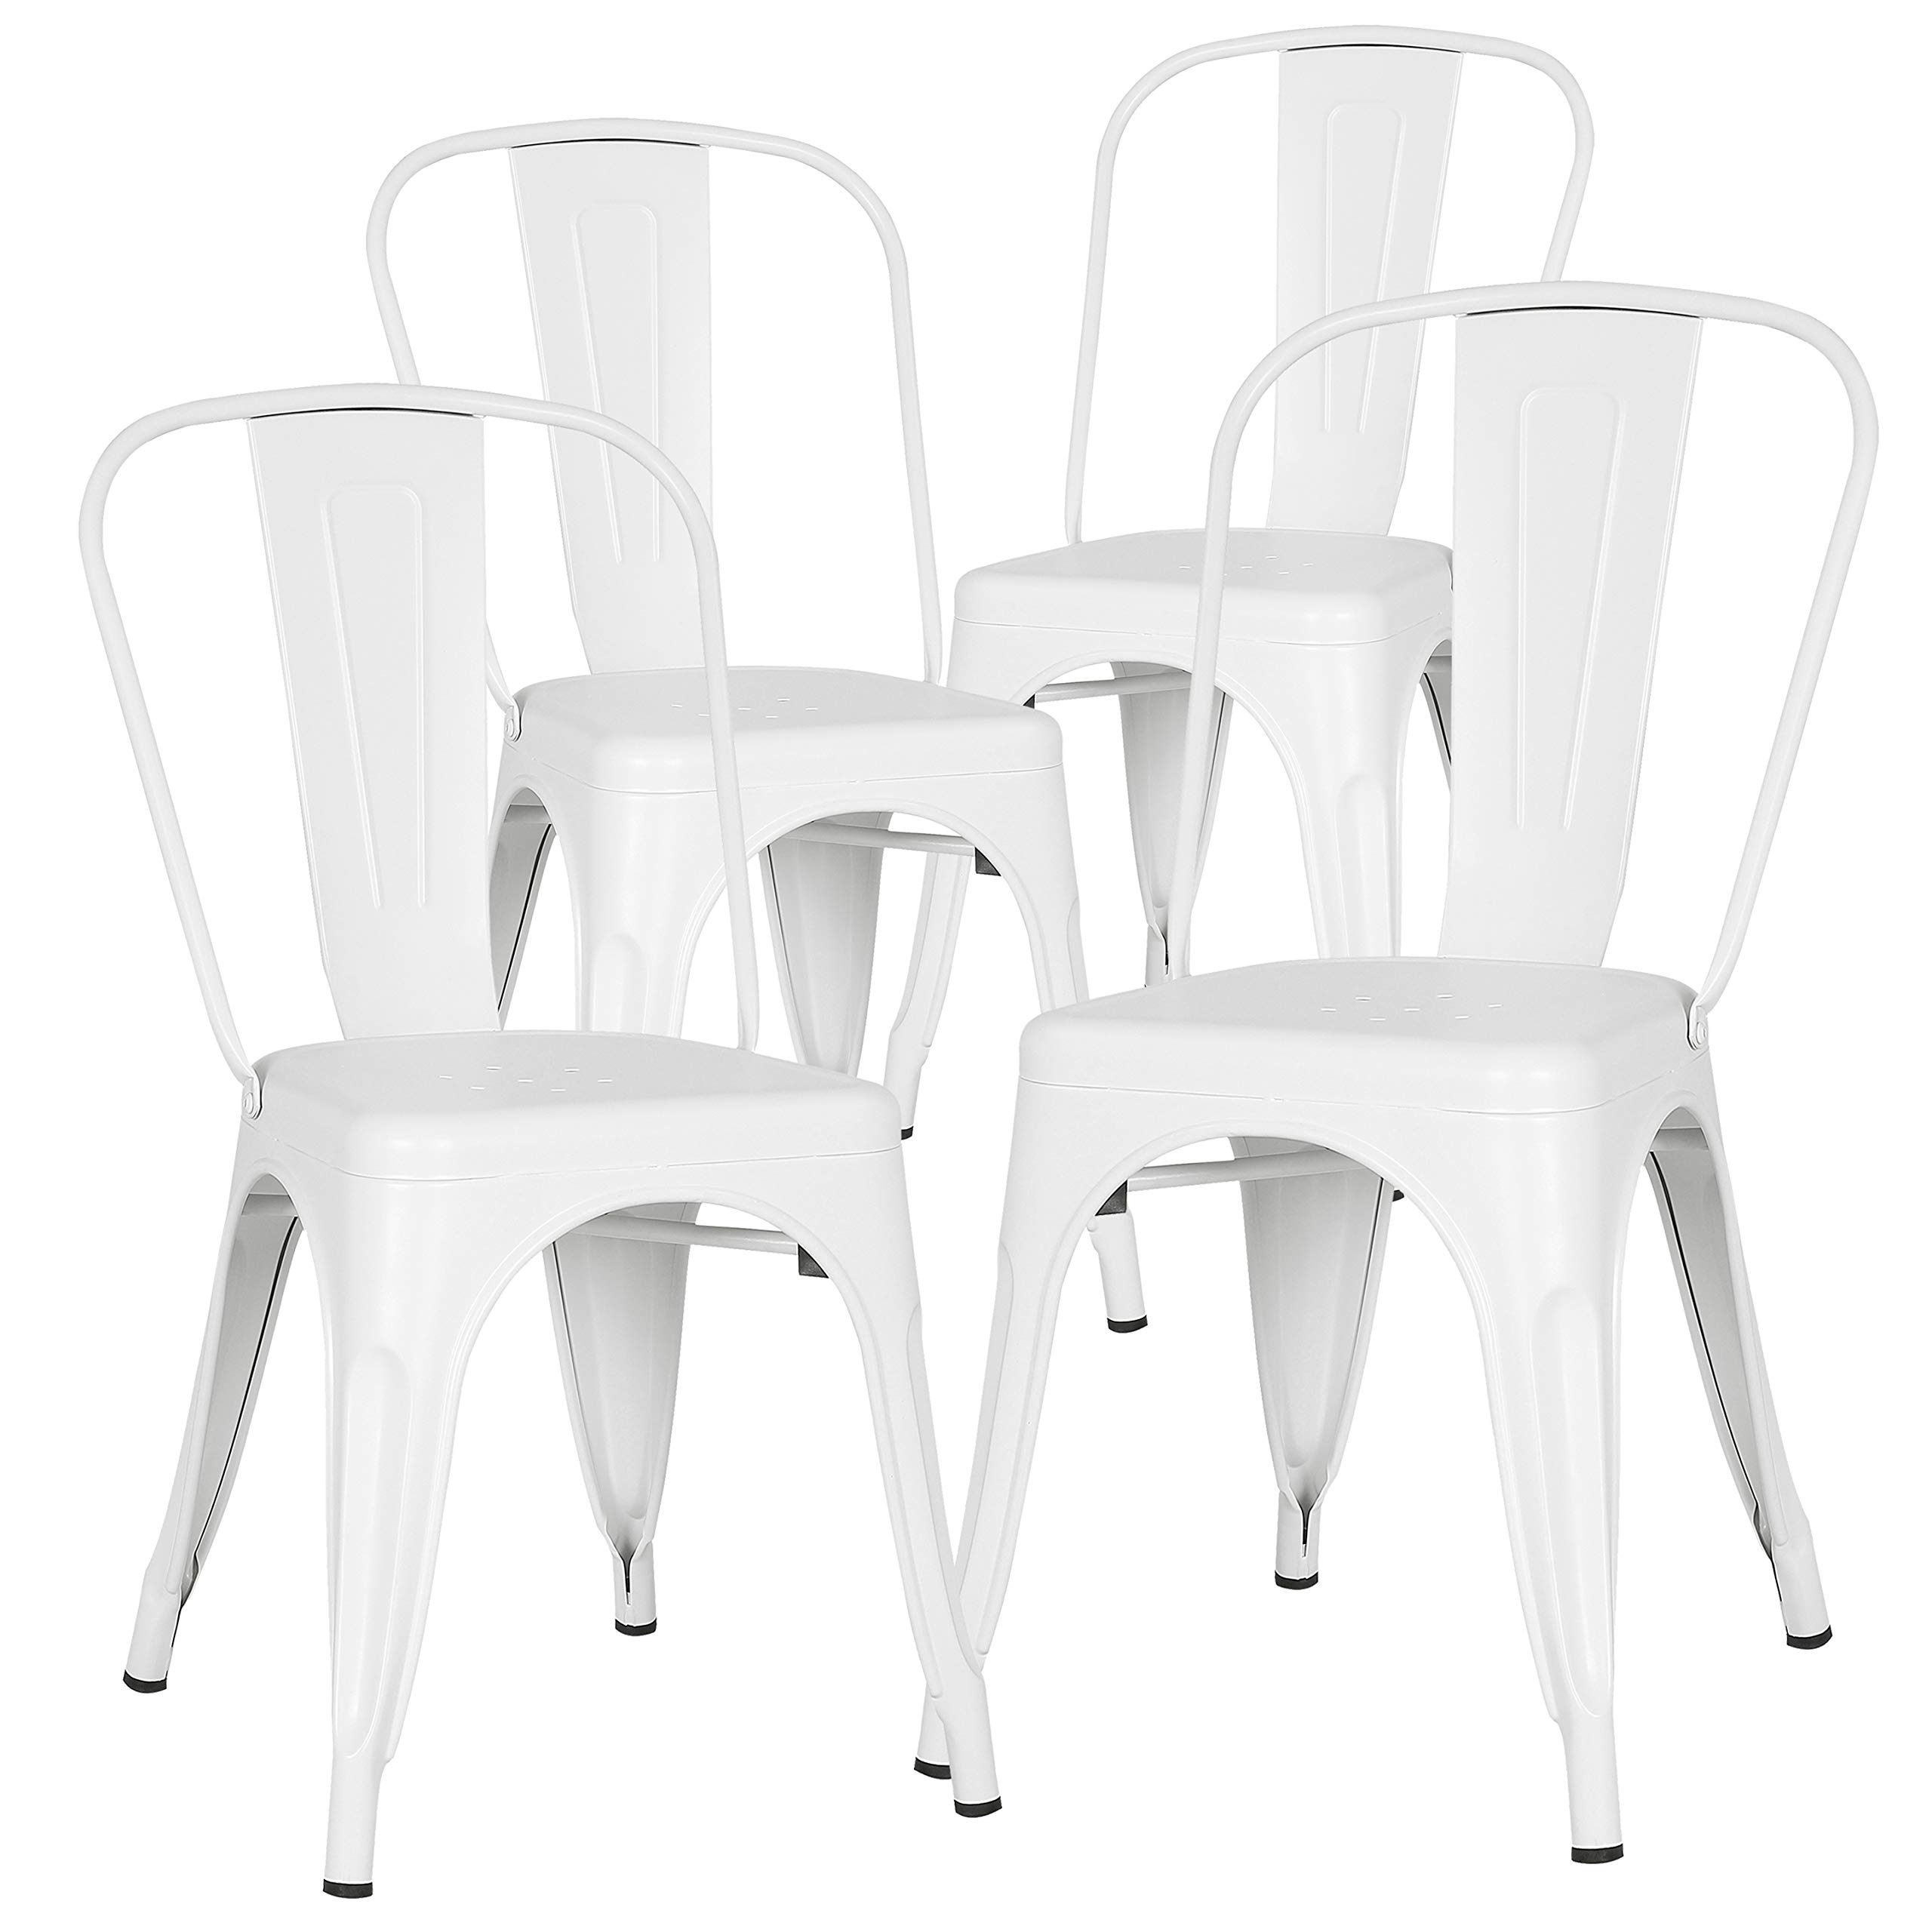 Poly and Bark Trattoria Side Chair in White (Set of 4)